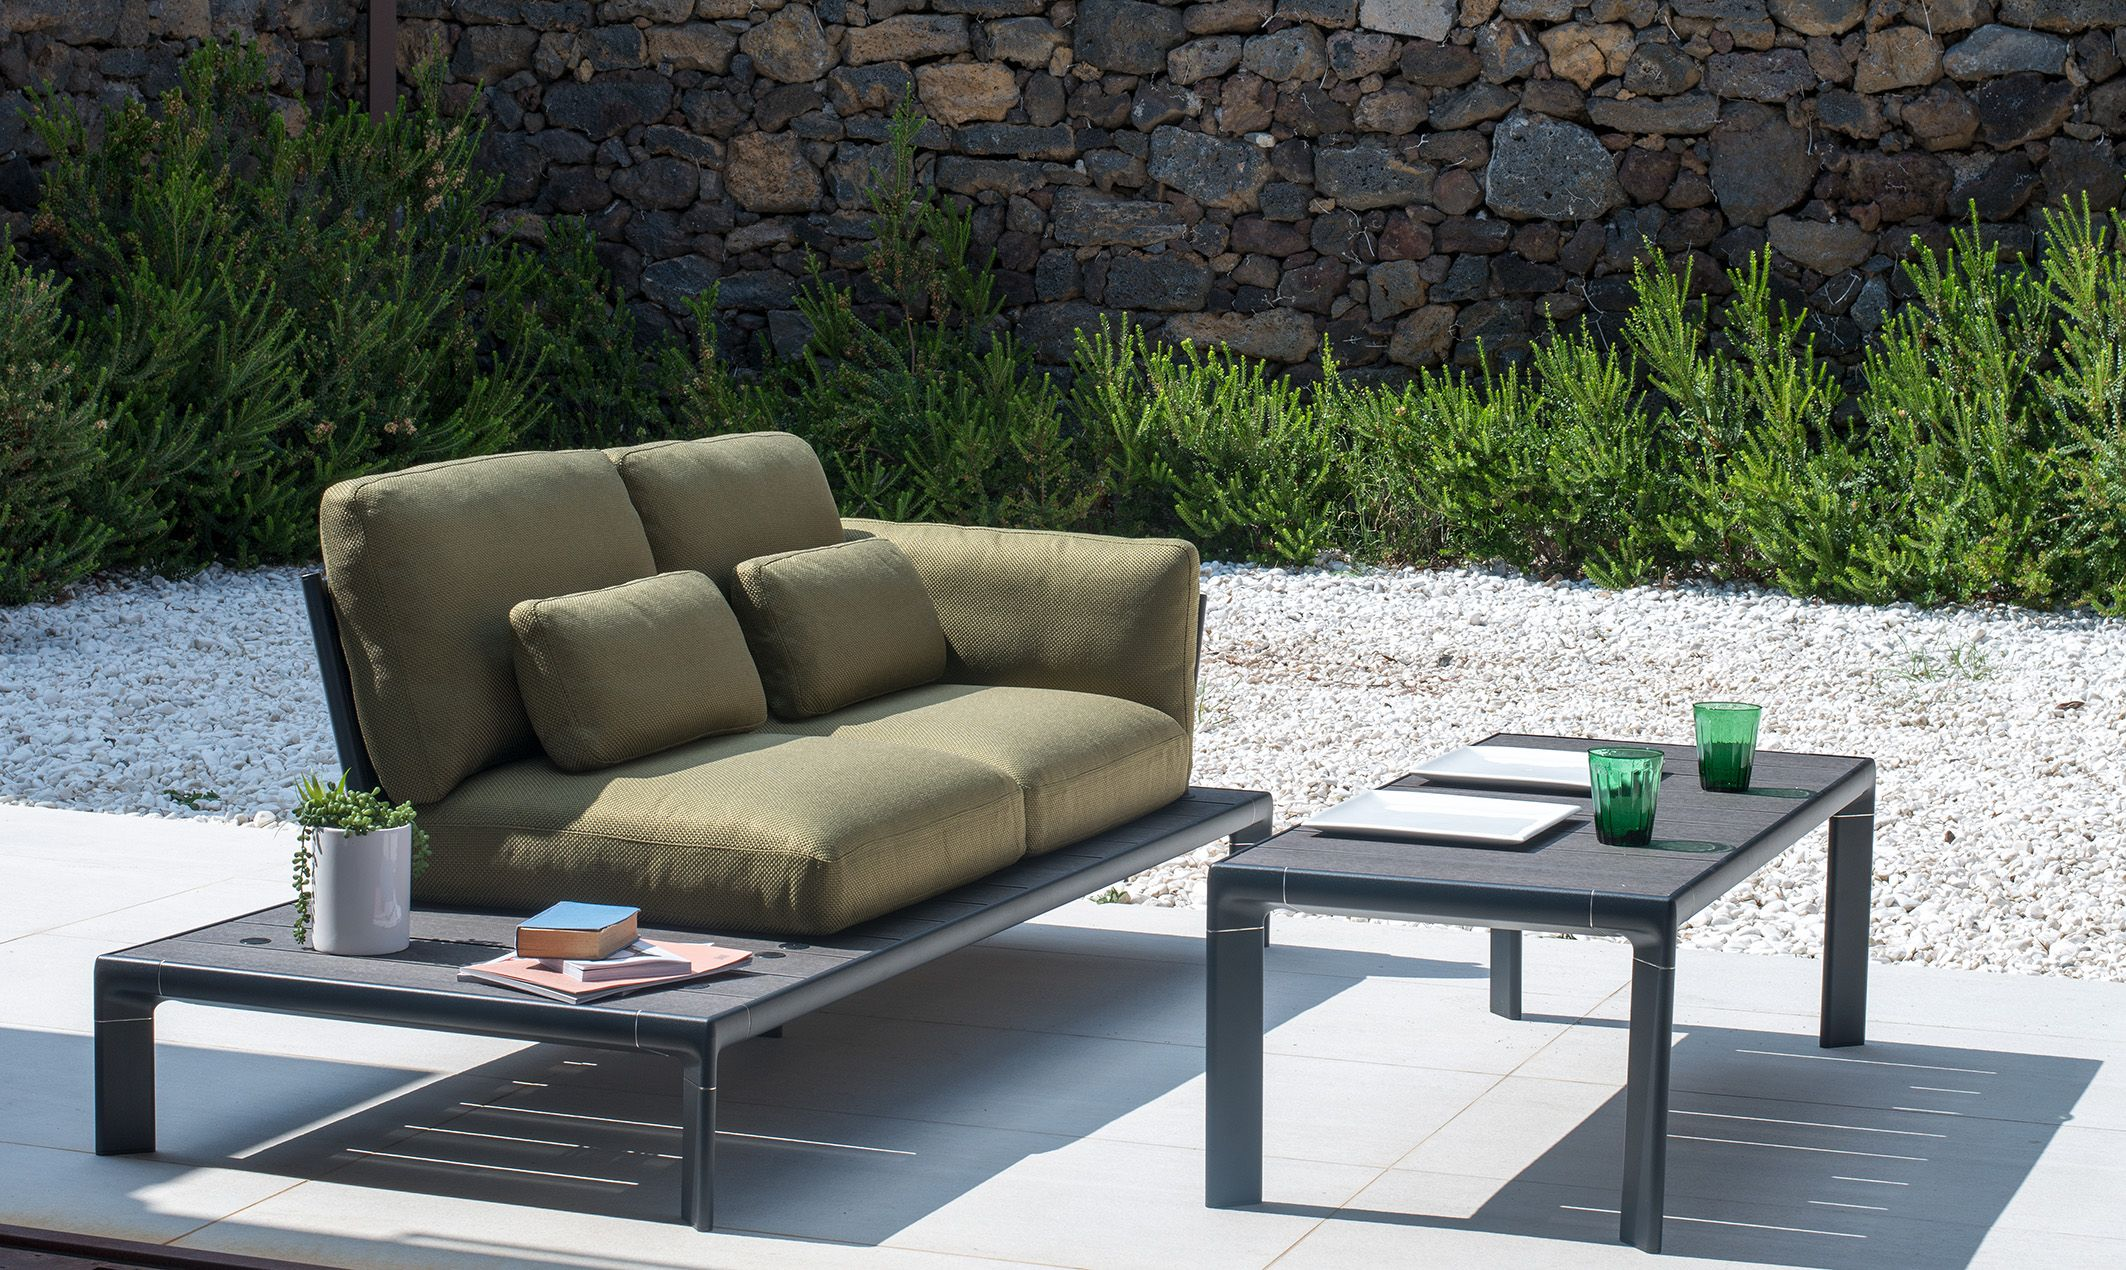 Lounge Sofa 2 Sitzer Outdoor Tami Collection In Verde | Commercial Outdoor Furniture, Patio Seating, Outdoor Furniture